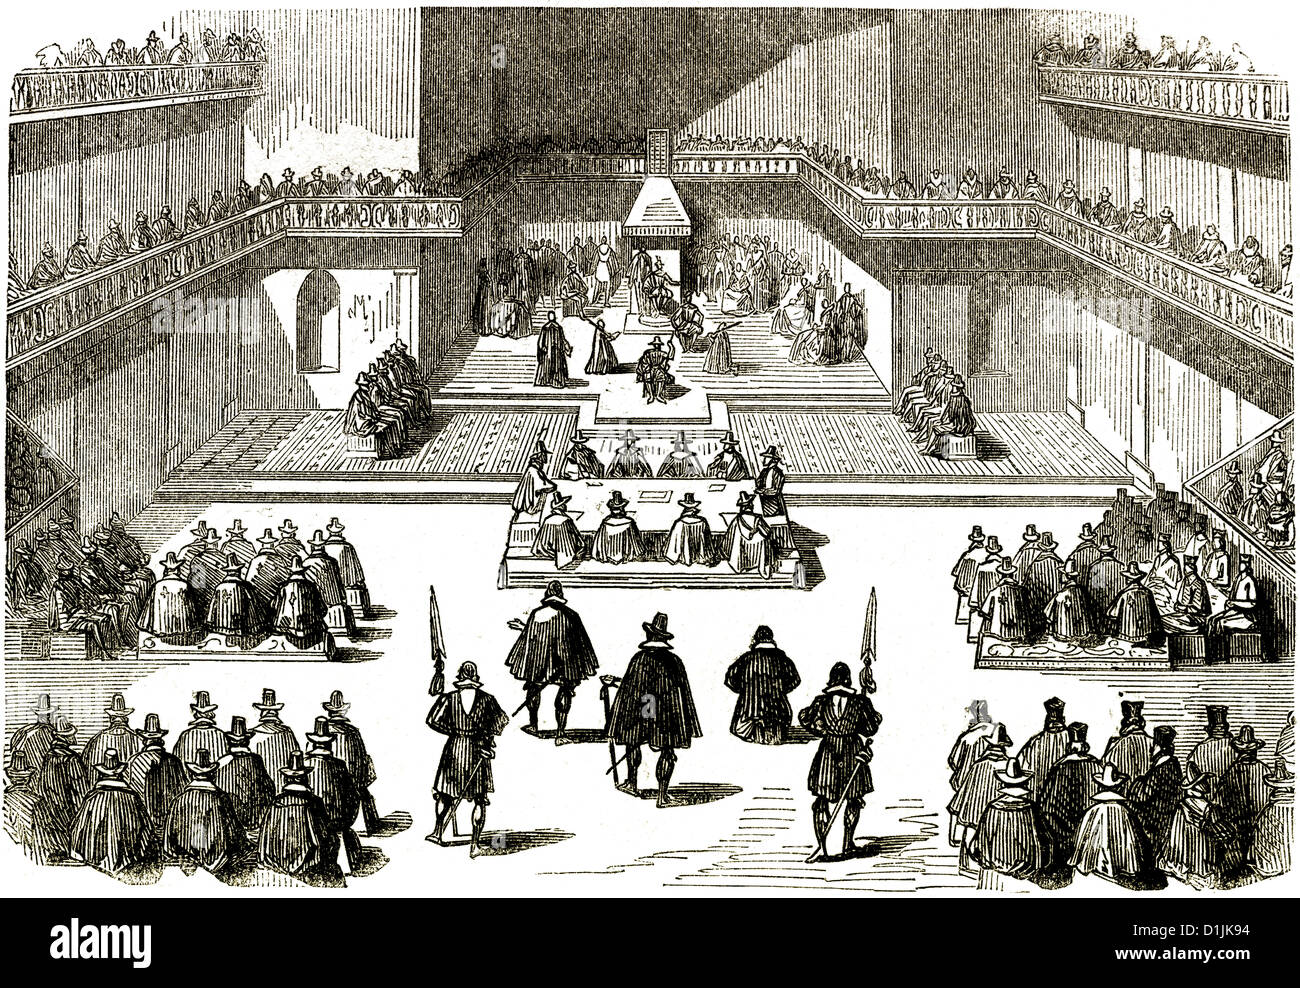 Estates Generals or États généraux, 1614, a meeting of representatives of  the three estates clergy, nobility and third estate